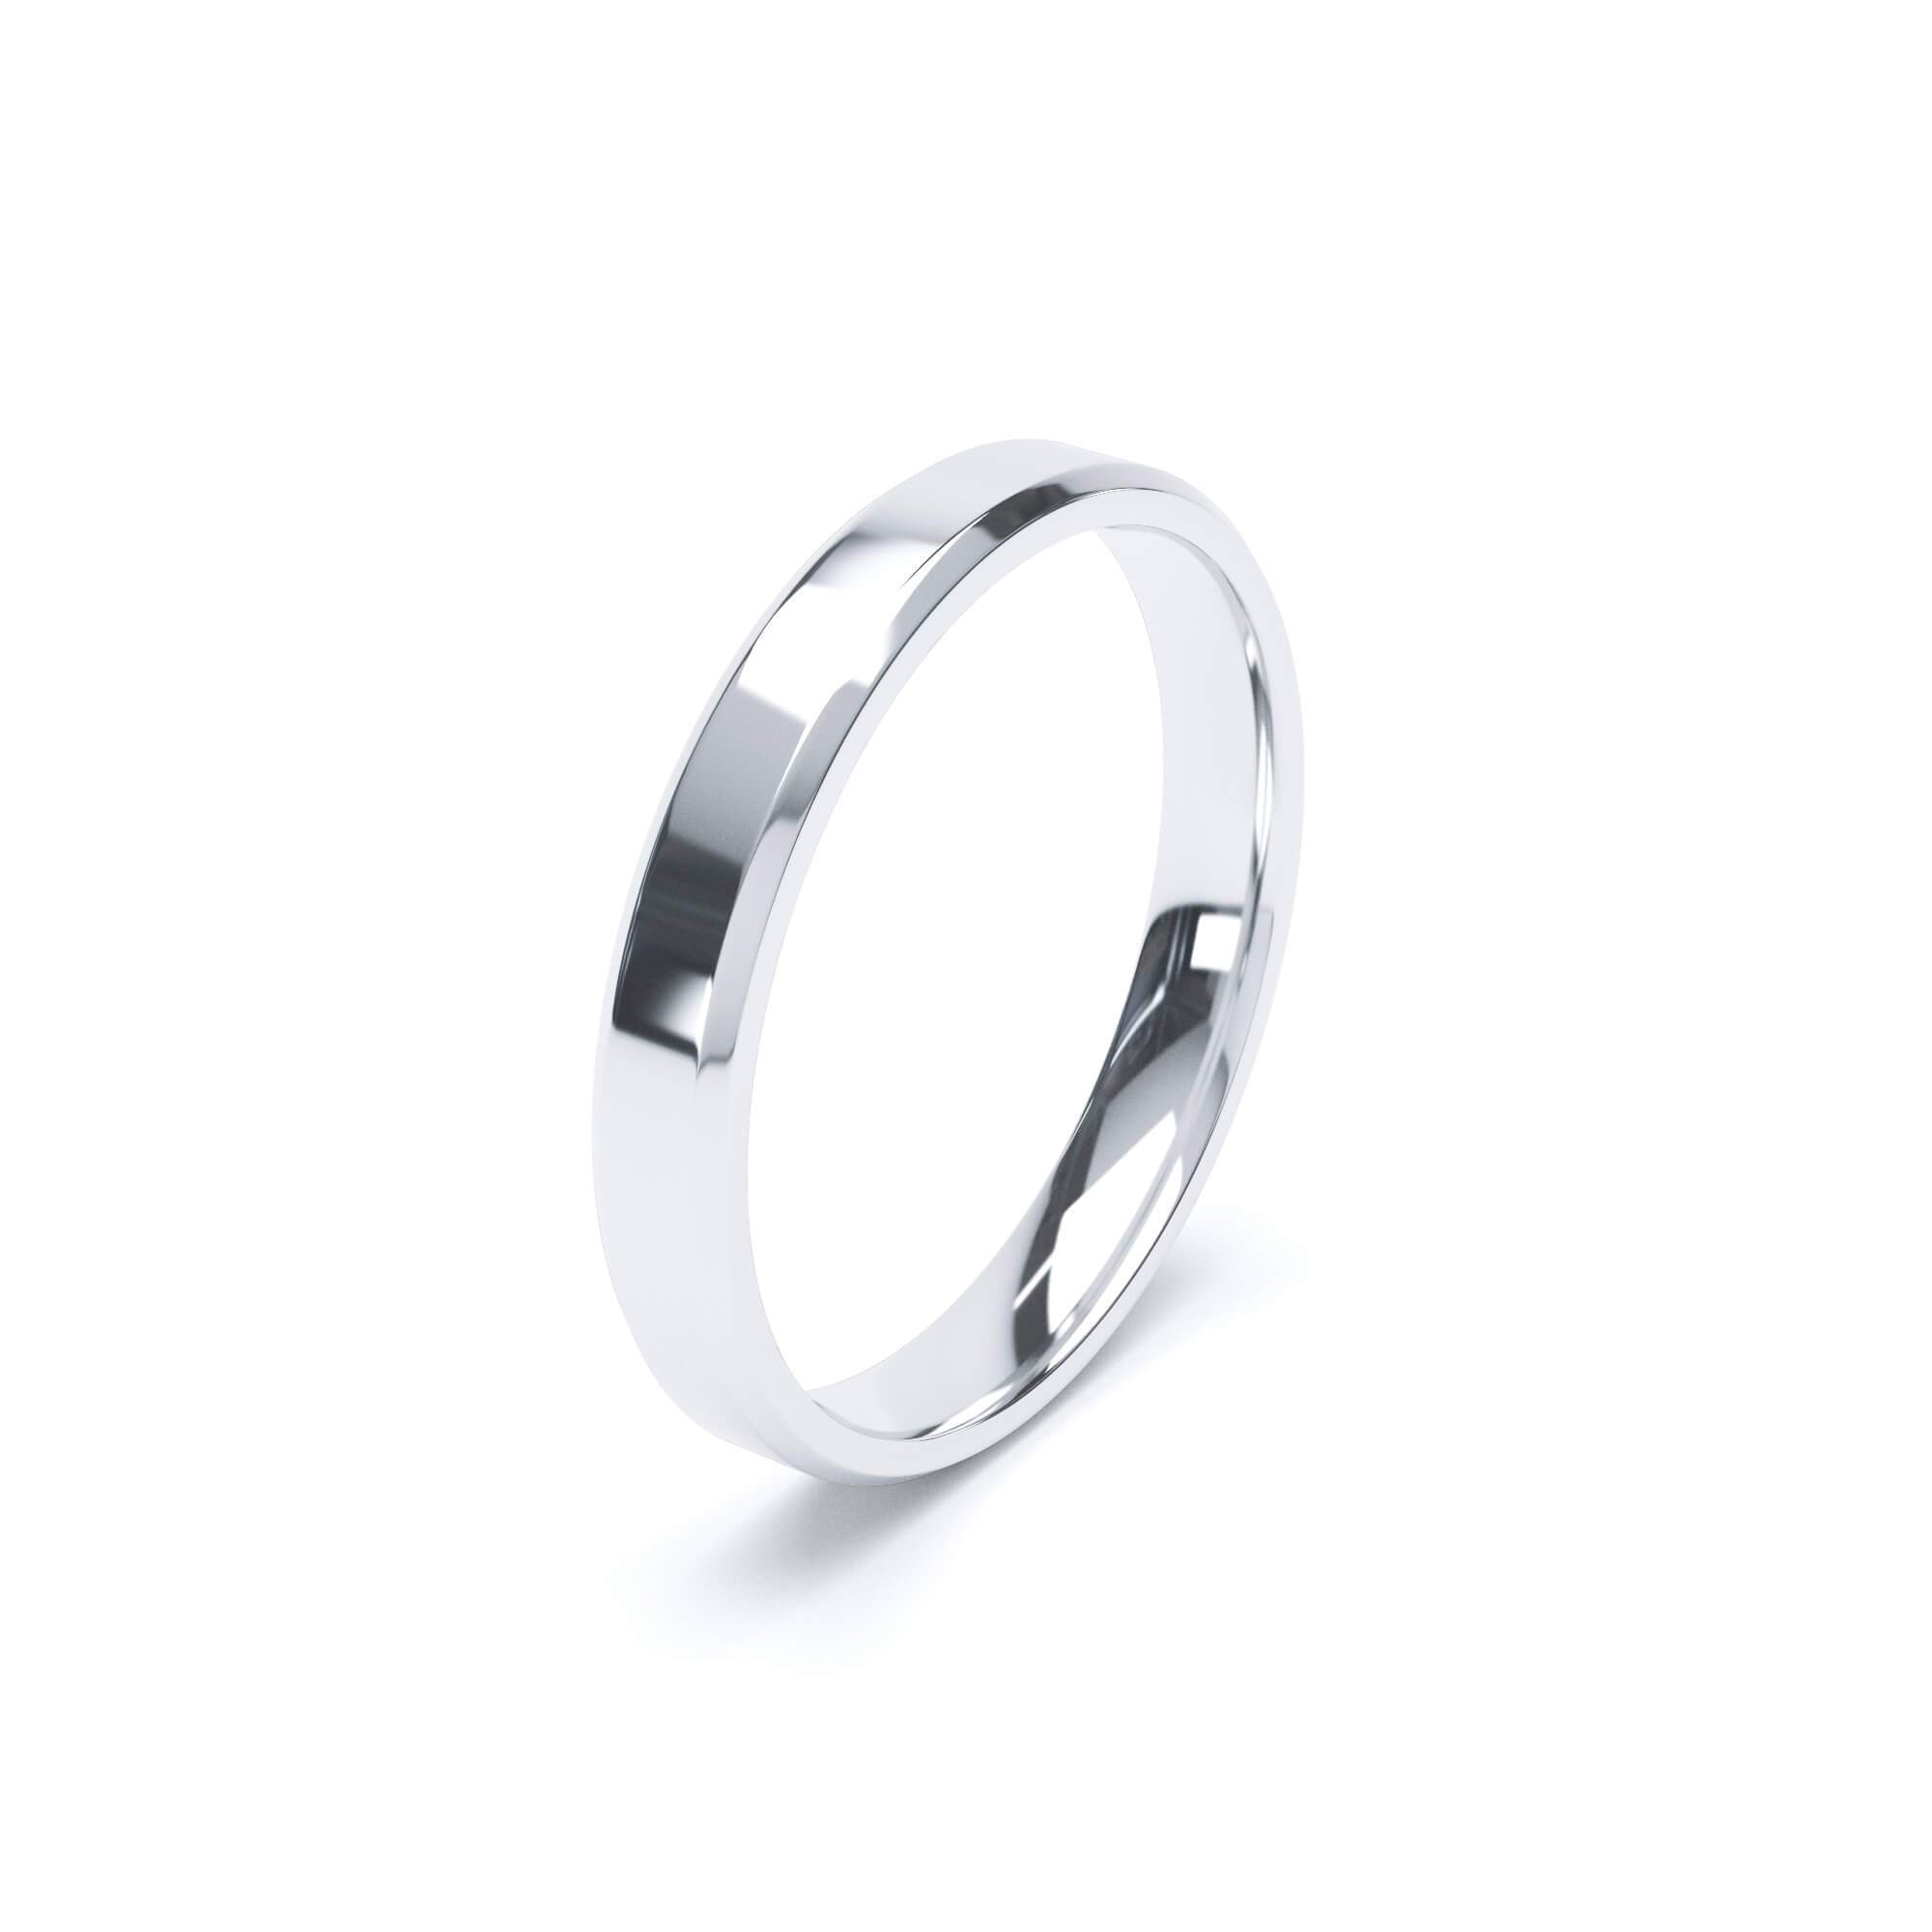 Lily Arkwright Wedding Bands Women's Plain Wedding Band Bevelled Edge Profile 18k White Gold